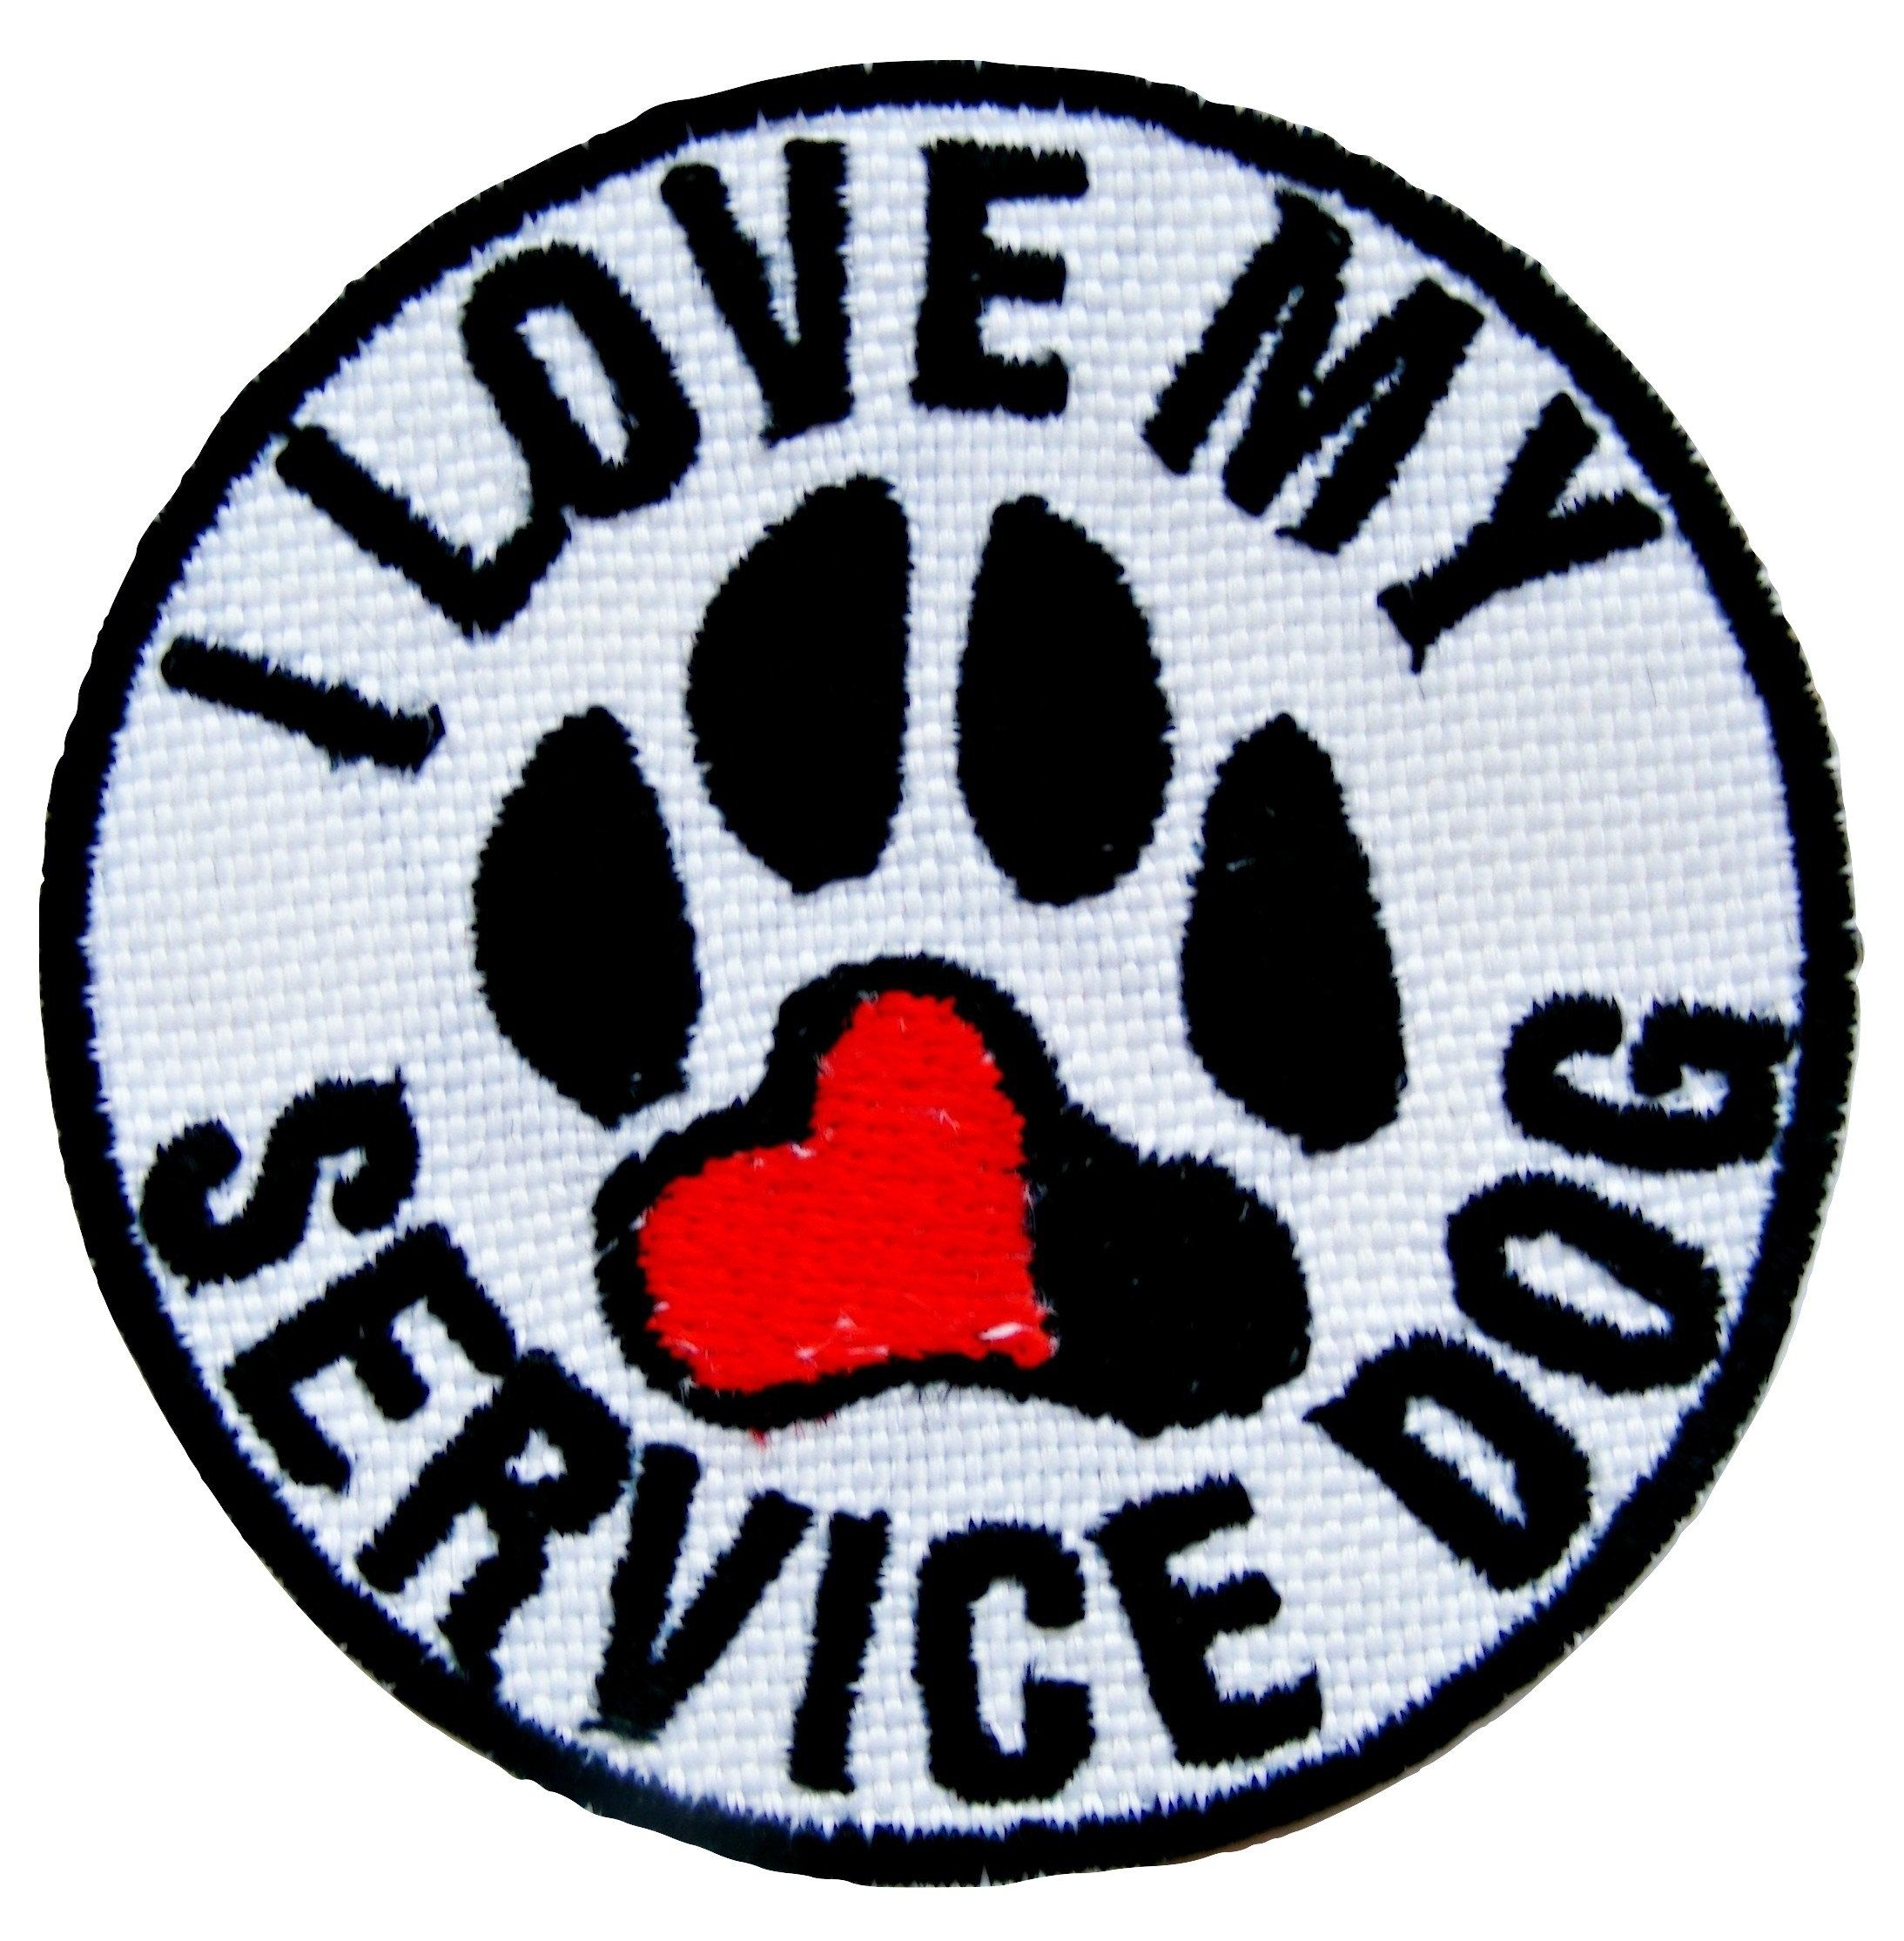 Personalised Paw Love Service Dog Name Embroidered Patches Iron On Badge Patches for Jacket Applique Patches for jeans Sale Free Delivery